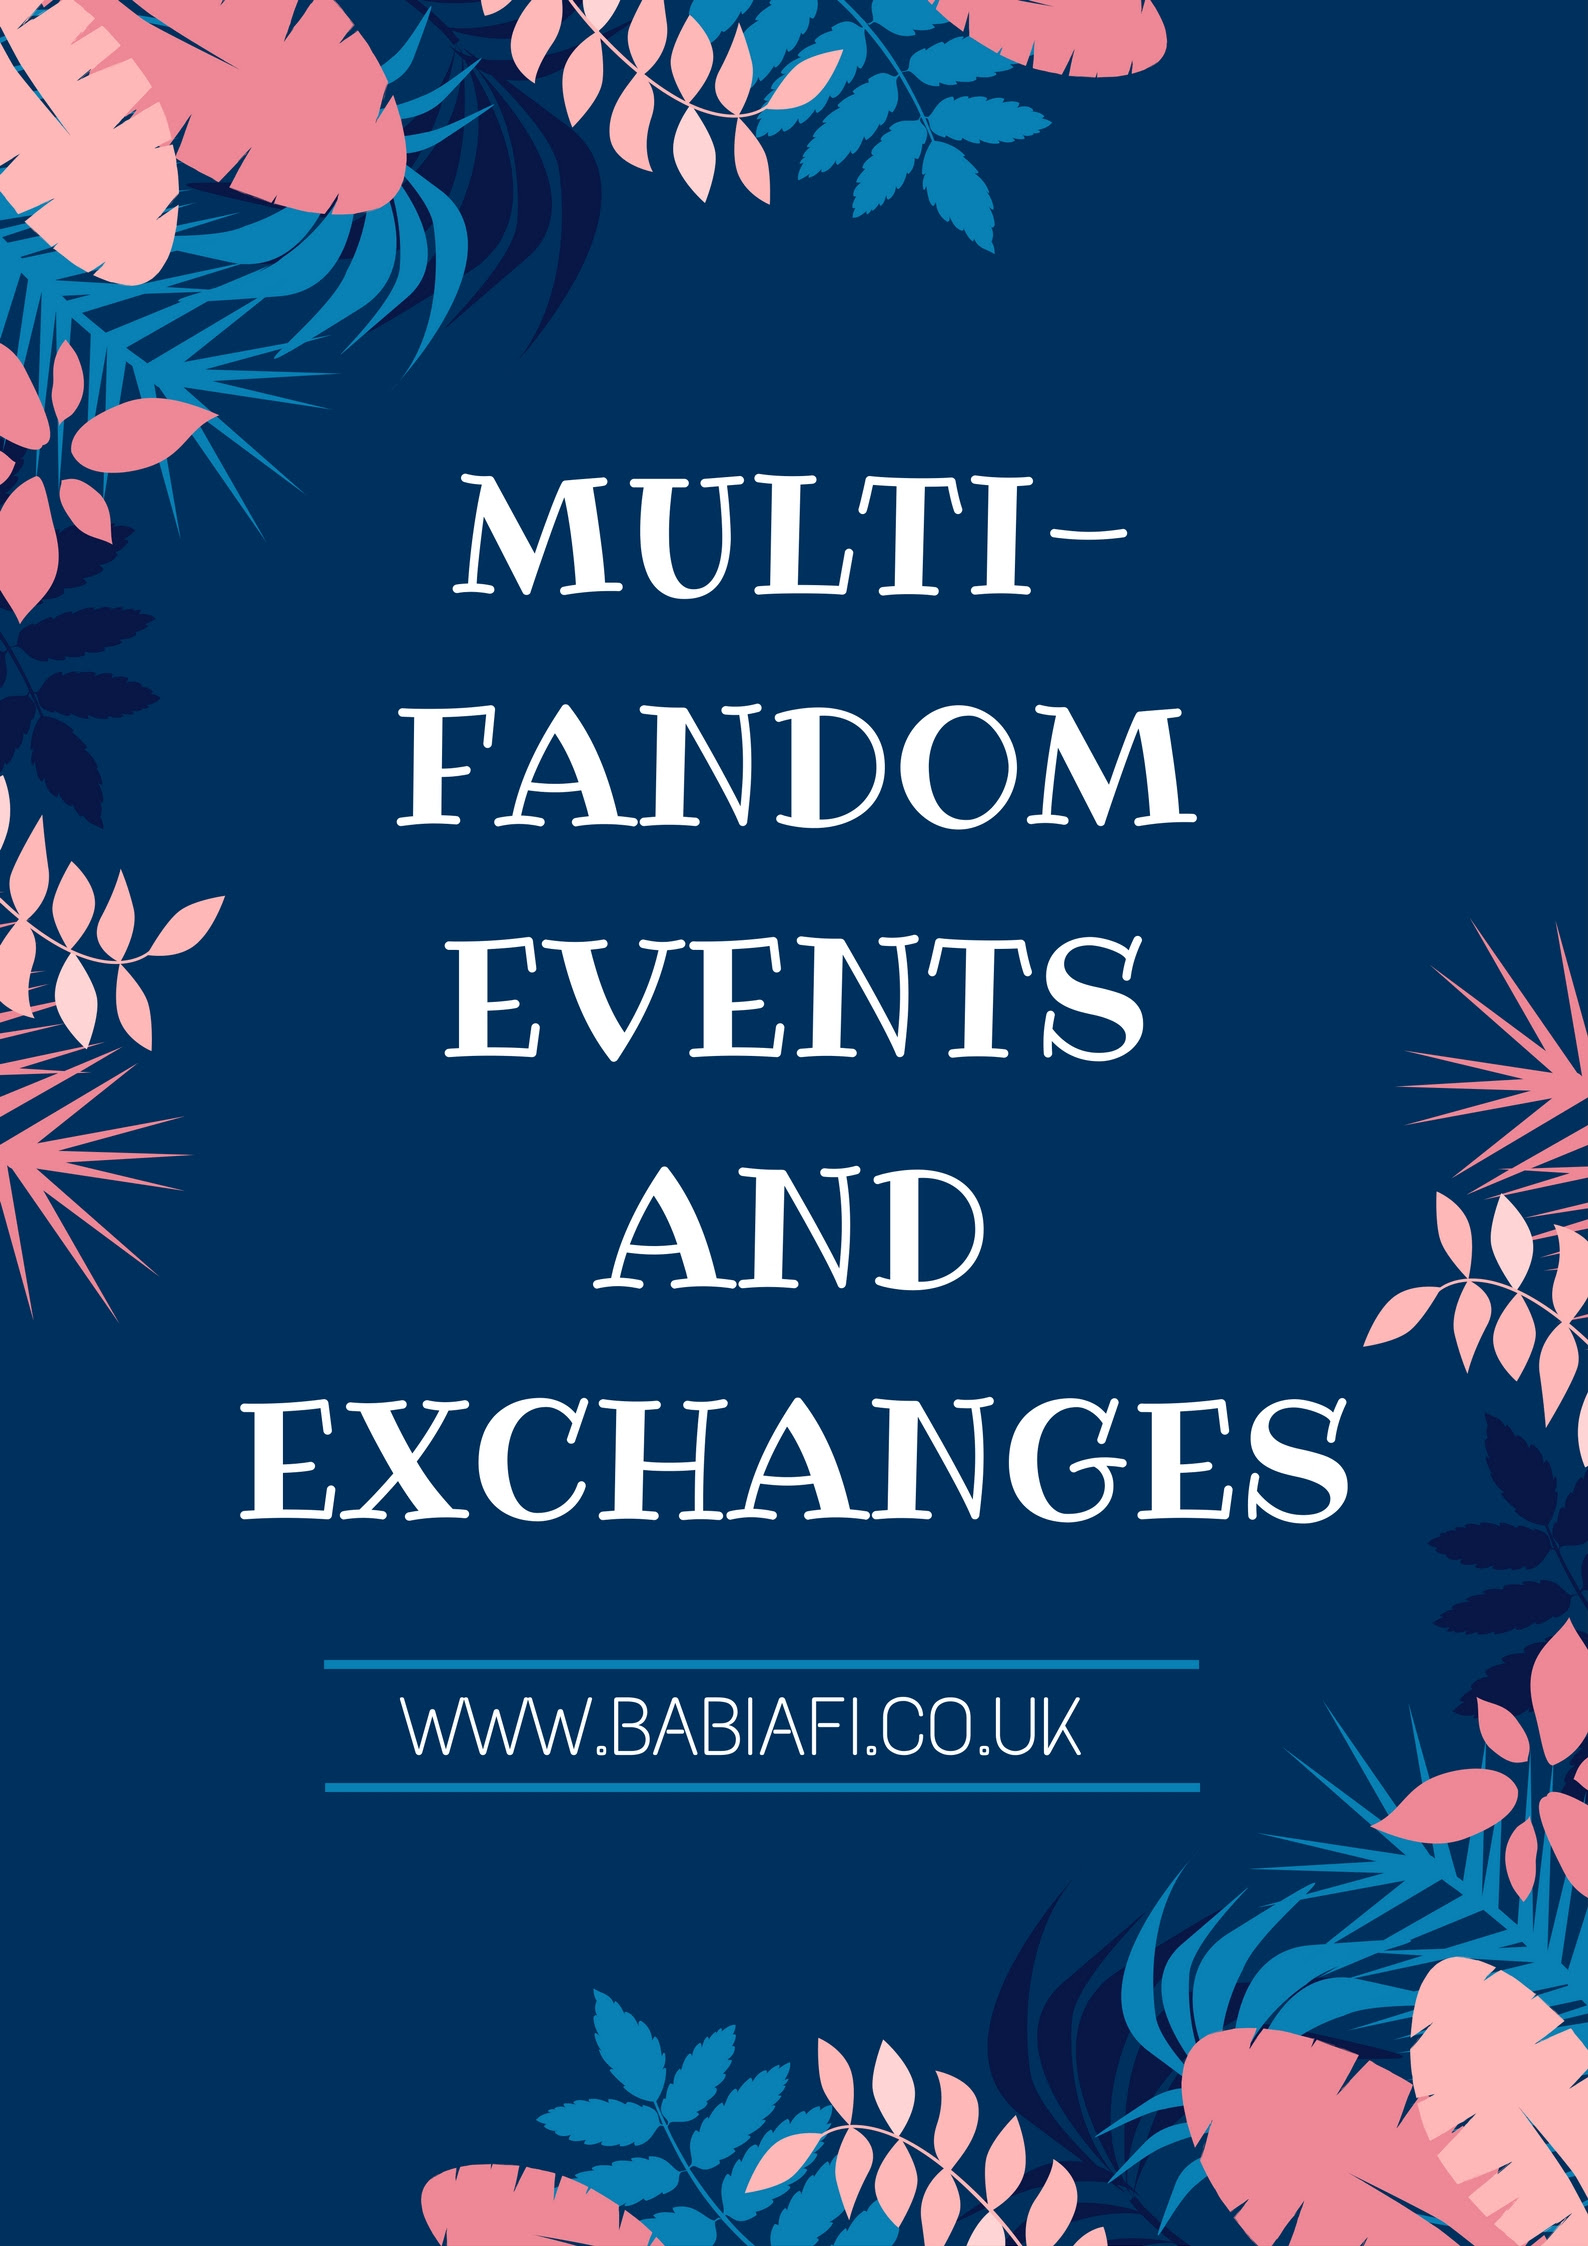 Multifandom Events and Exchanges